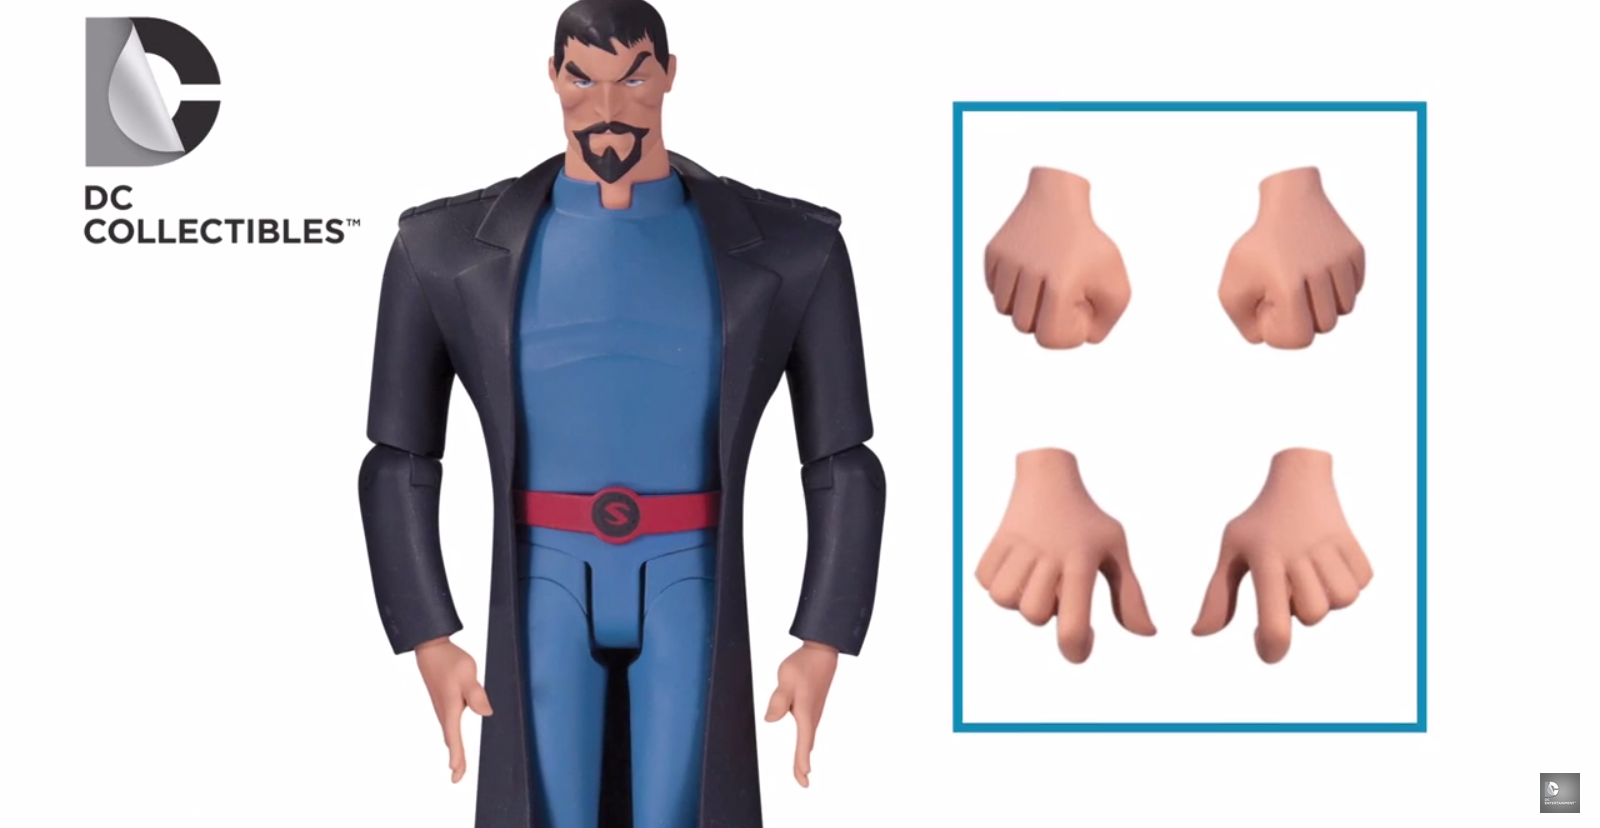 L'Action figure per Superman